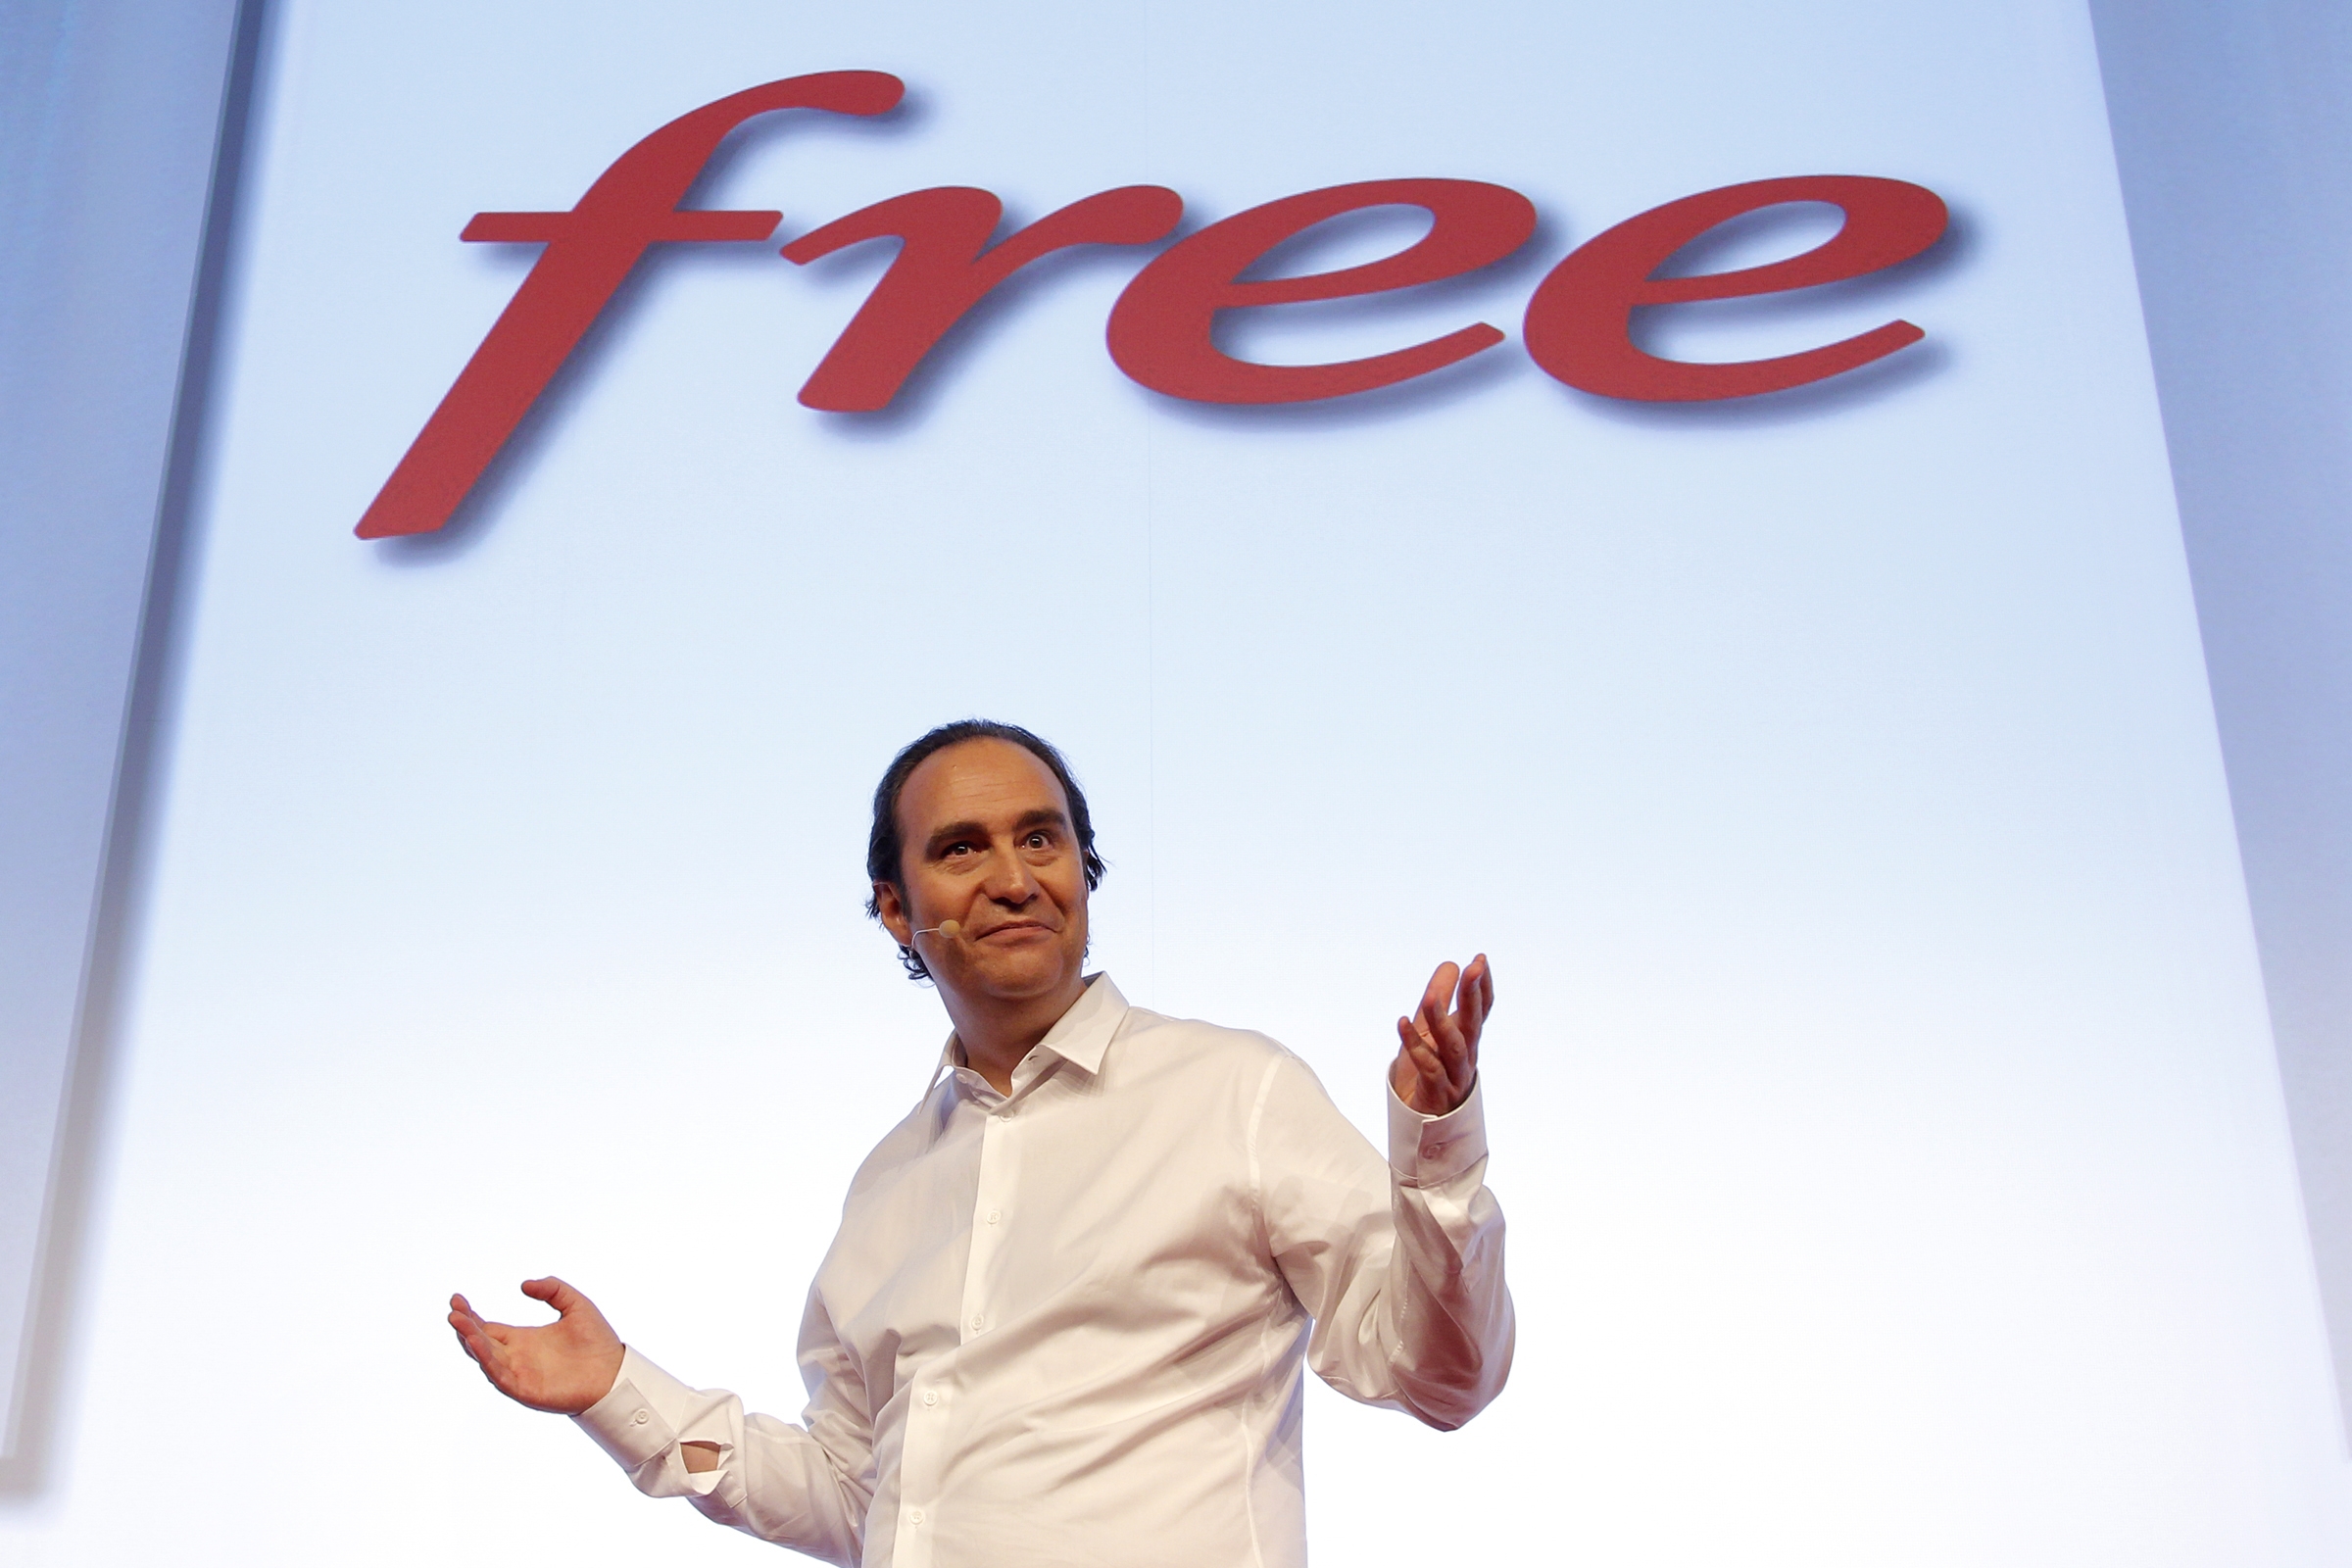 Xavier Niel, founder of French broadband Internet provider Iliad